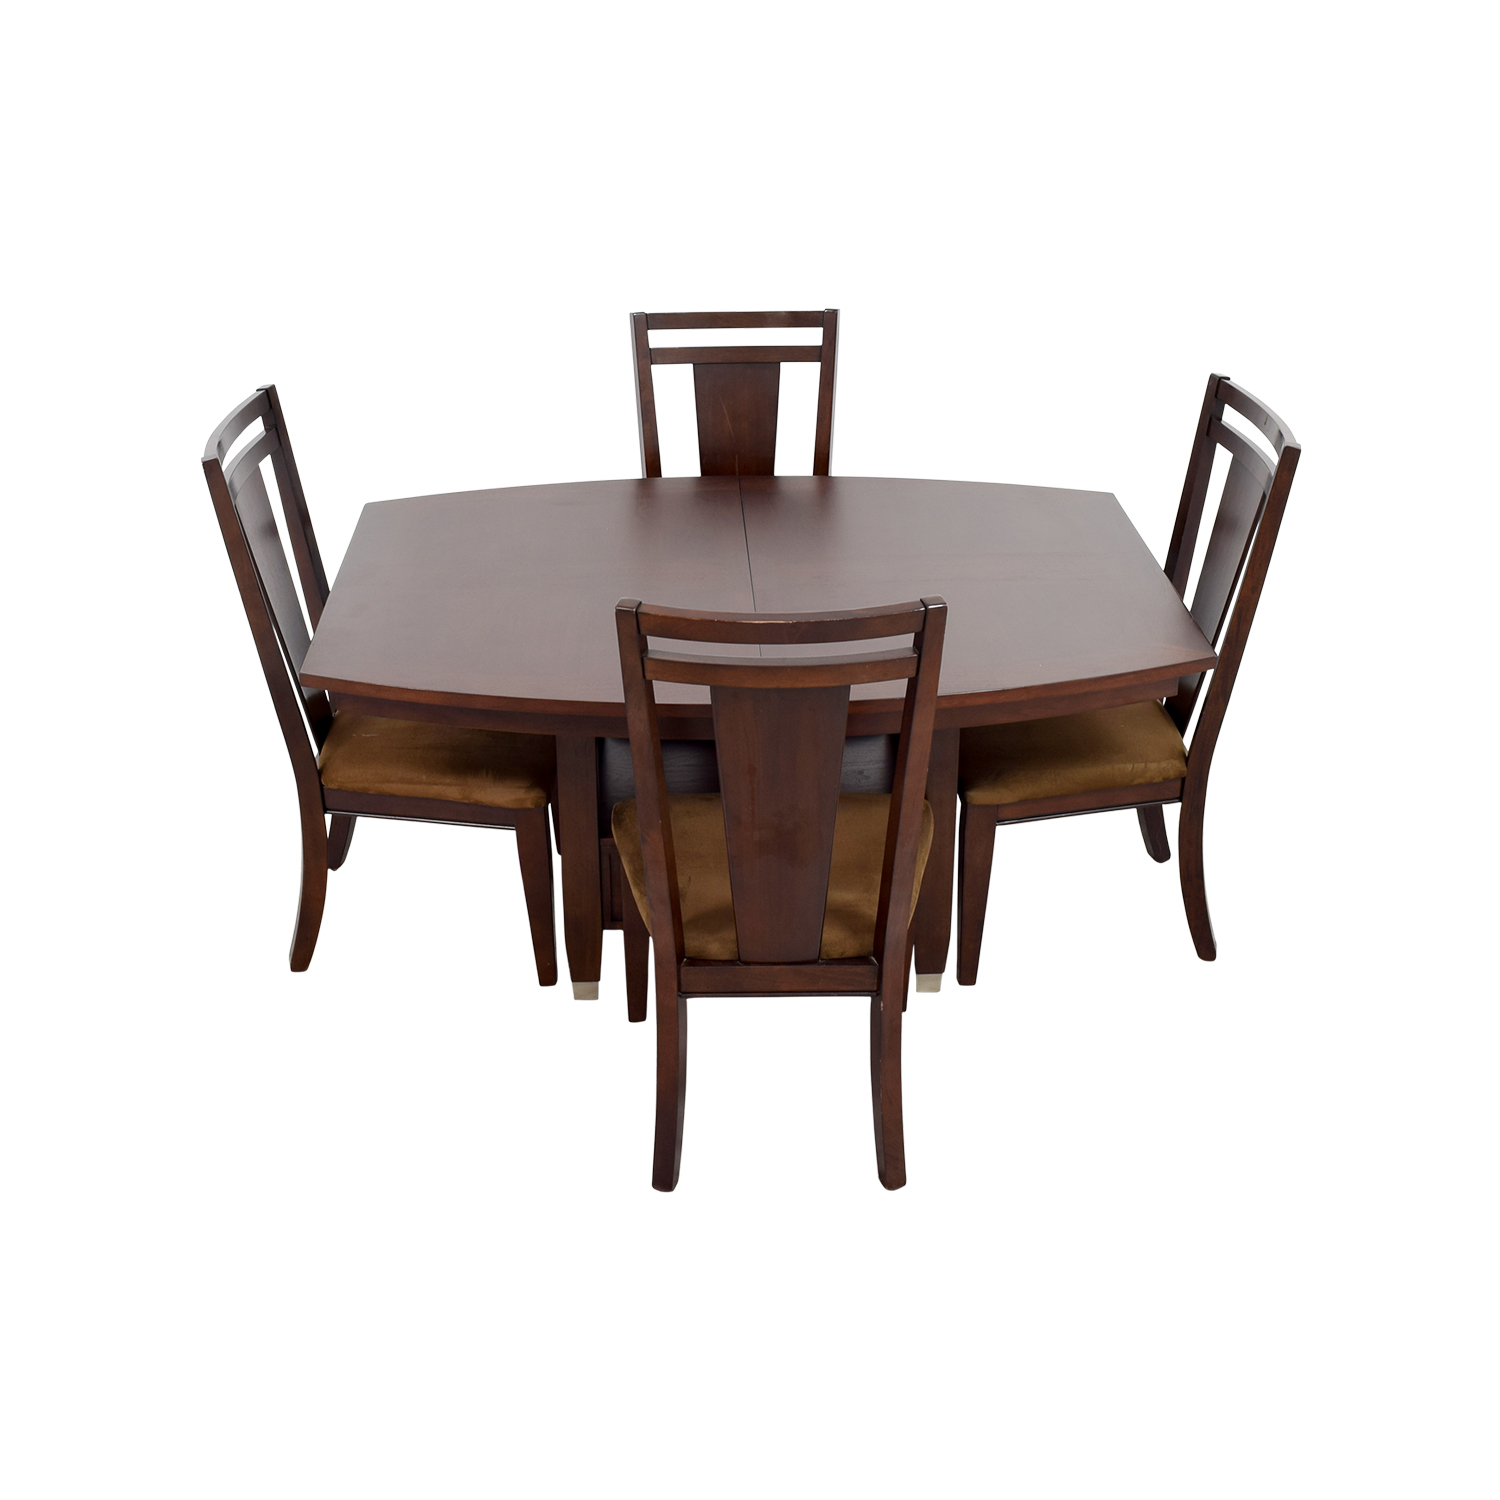 78 off broyhill broyhill wood dining table set tables for Wood dining table set